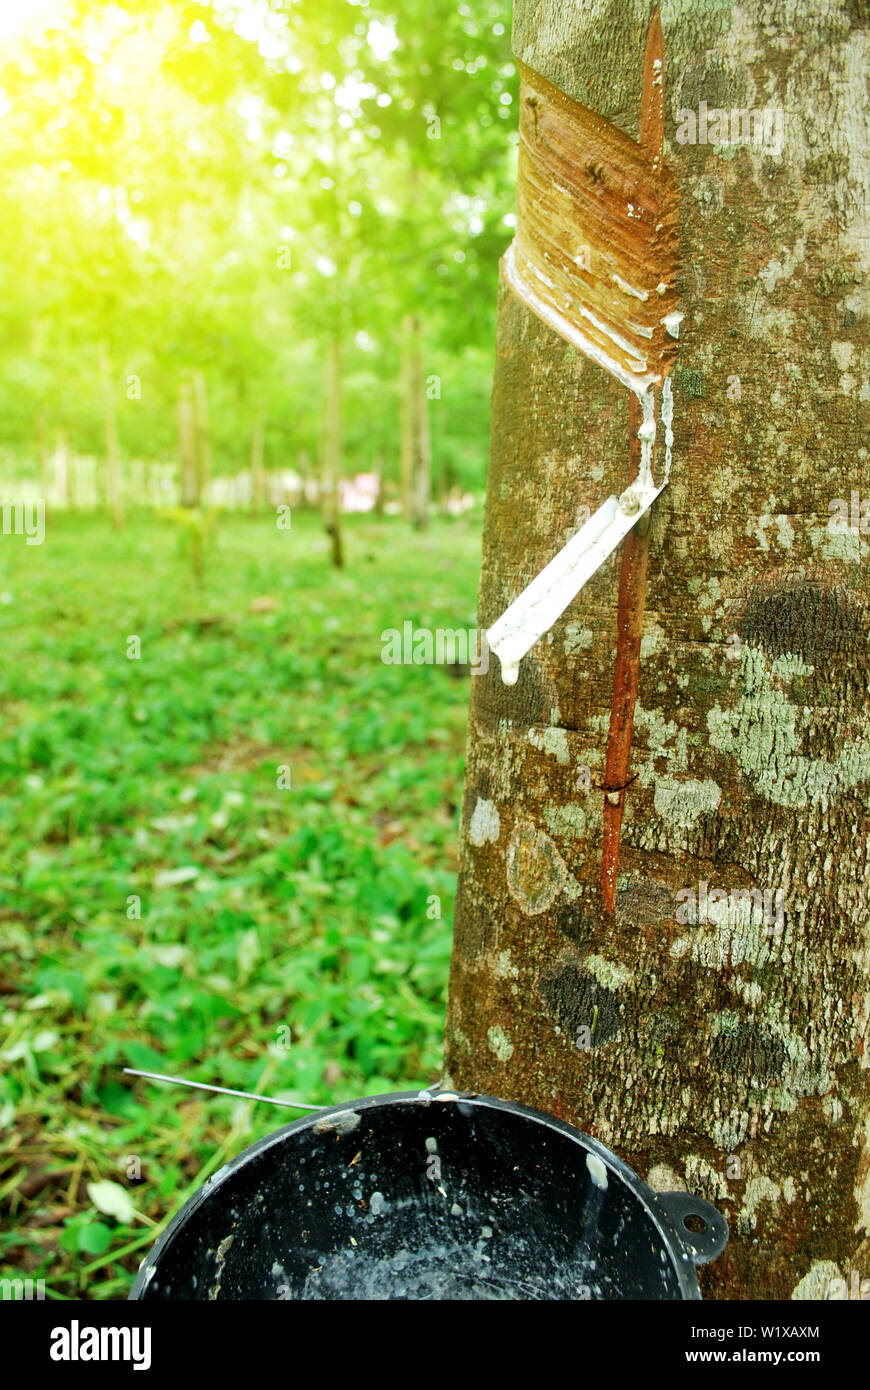 Rubber plantation in Thailand Abundant. Rubber production. - Stock Image